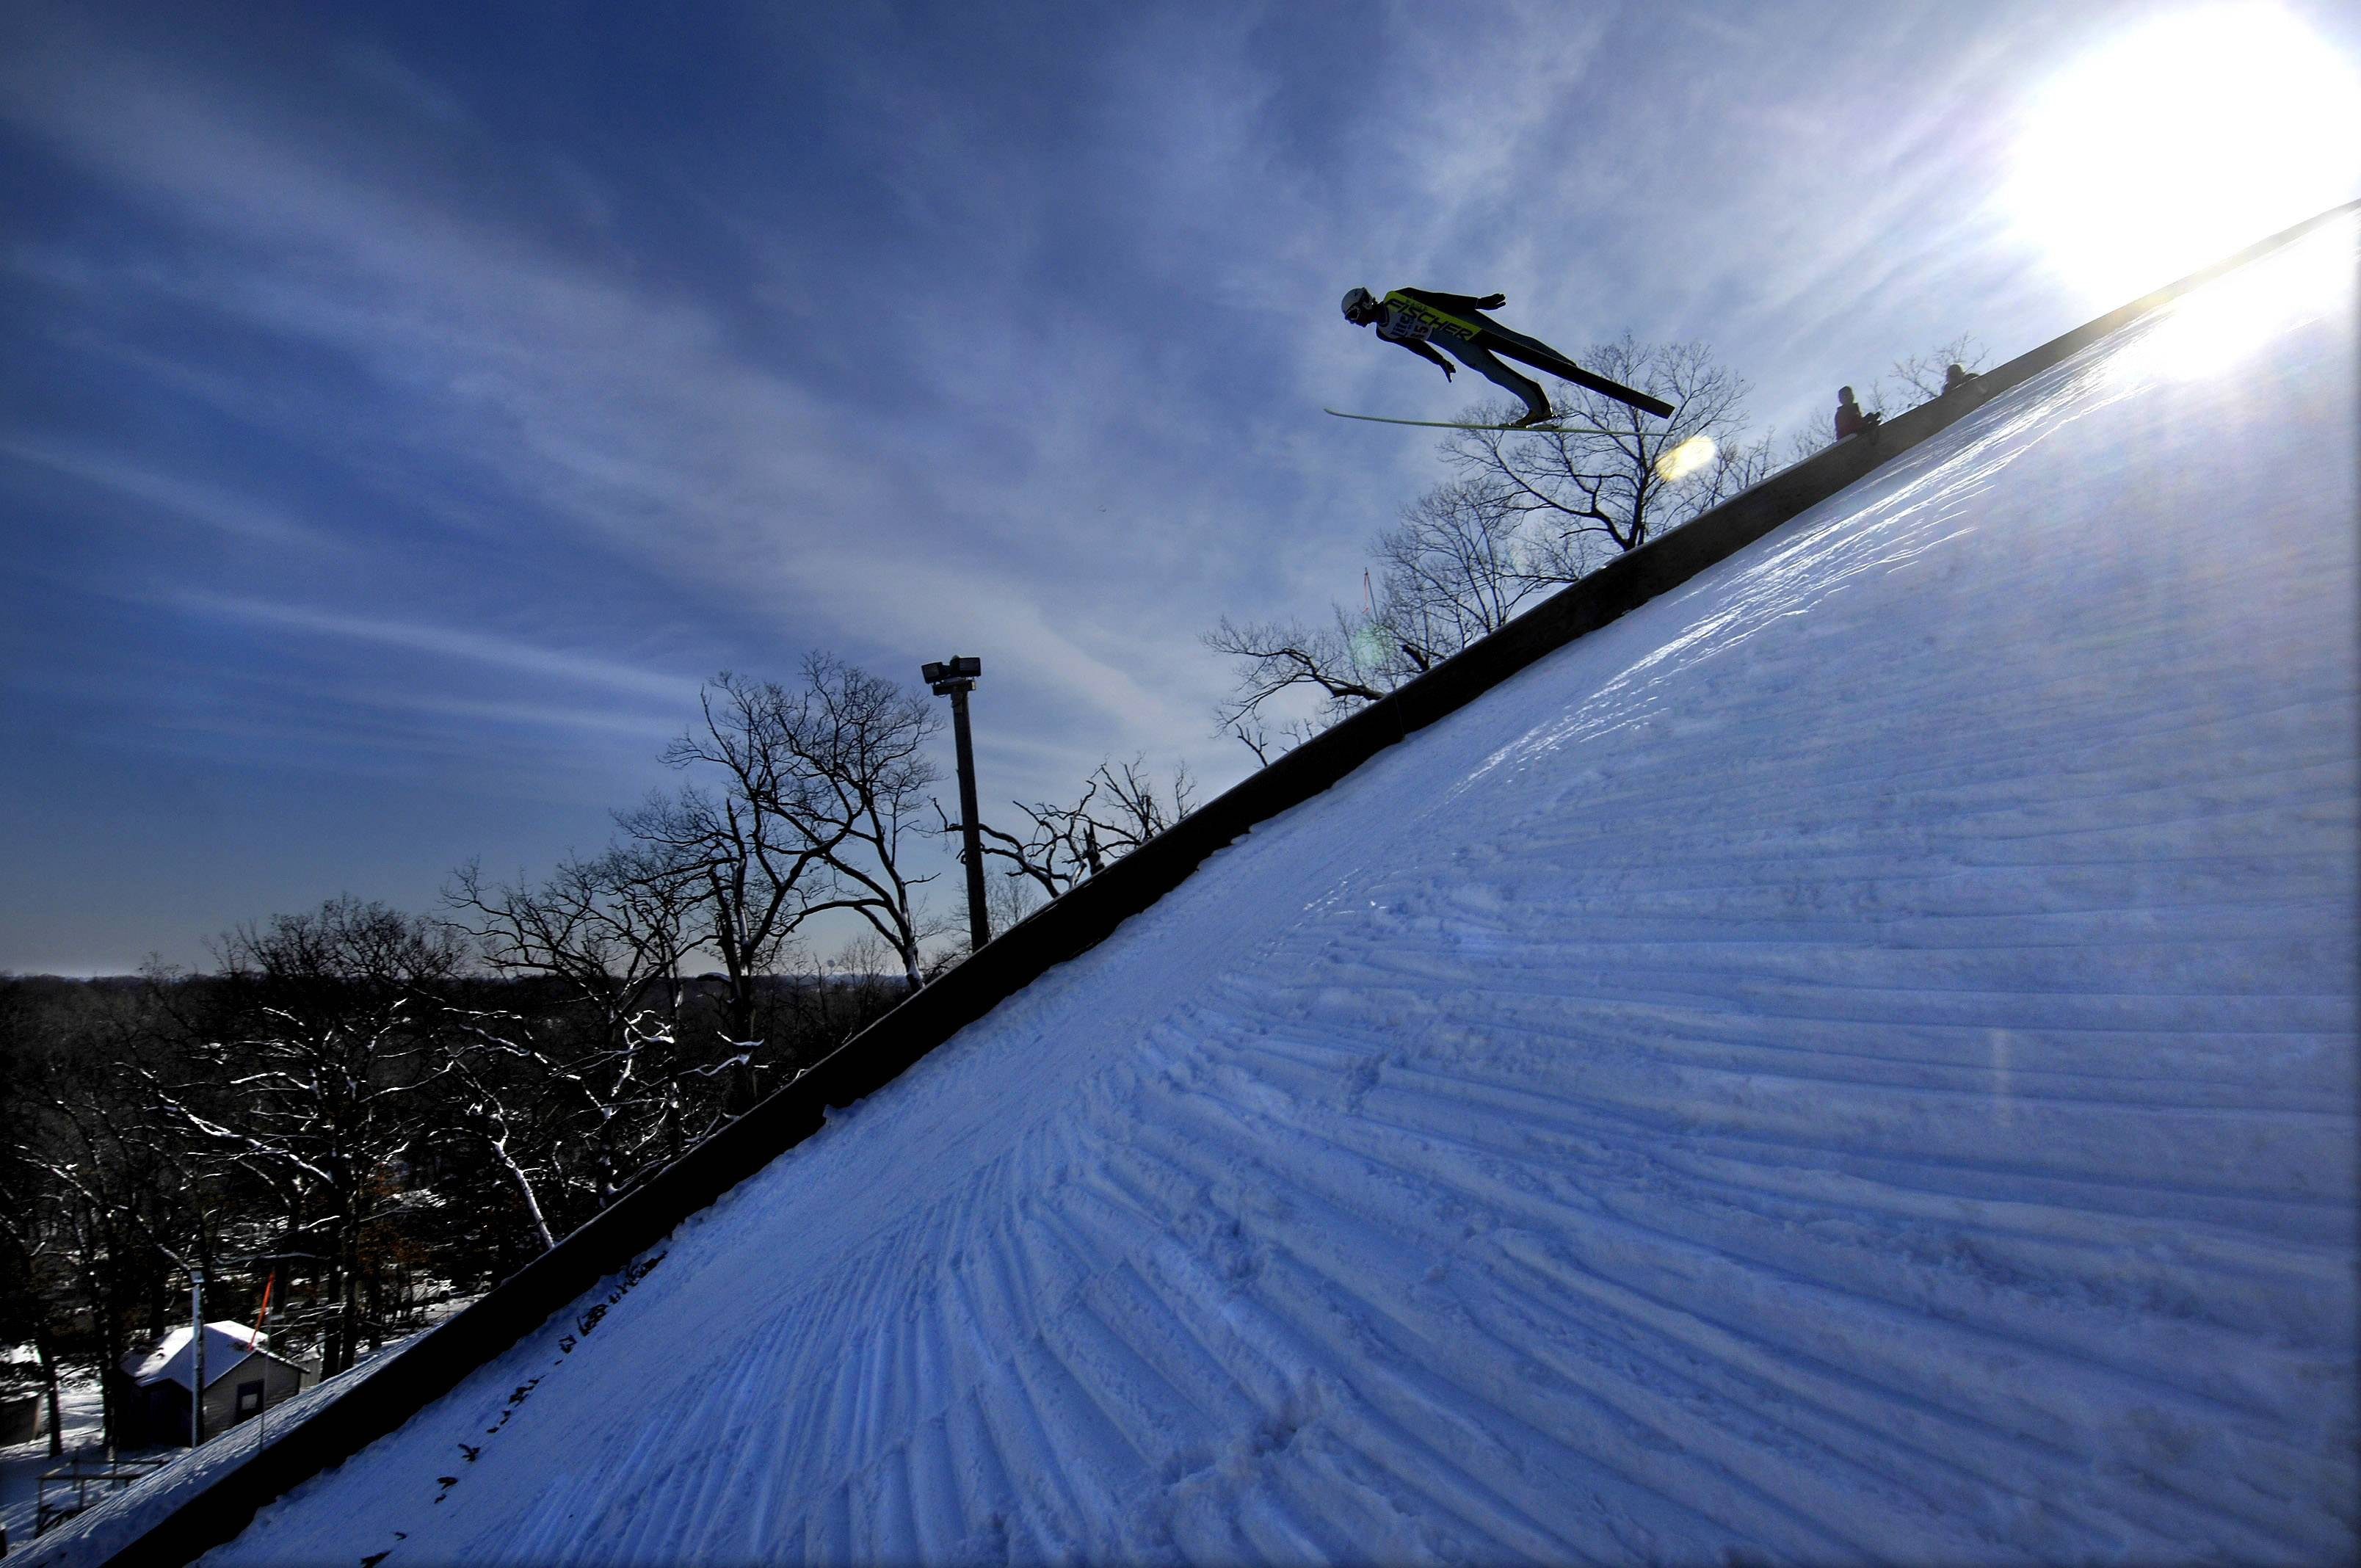 The packed snow on the 70-meter ski jump hill reflects the blue winter sky as Blake Hughs sails down at the annual Norge Ski Club winter jump competition in Fox River Grove. Dozens of former and potential Olympic ski jumpers compete at the event, which kicks off this weekend for the 112th year.